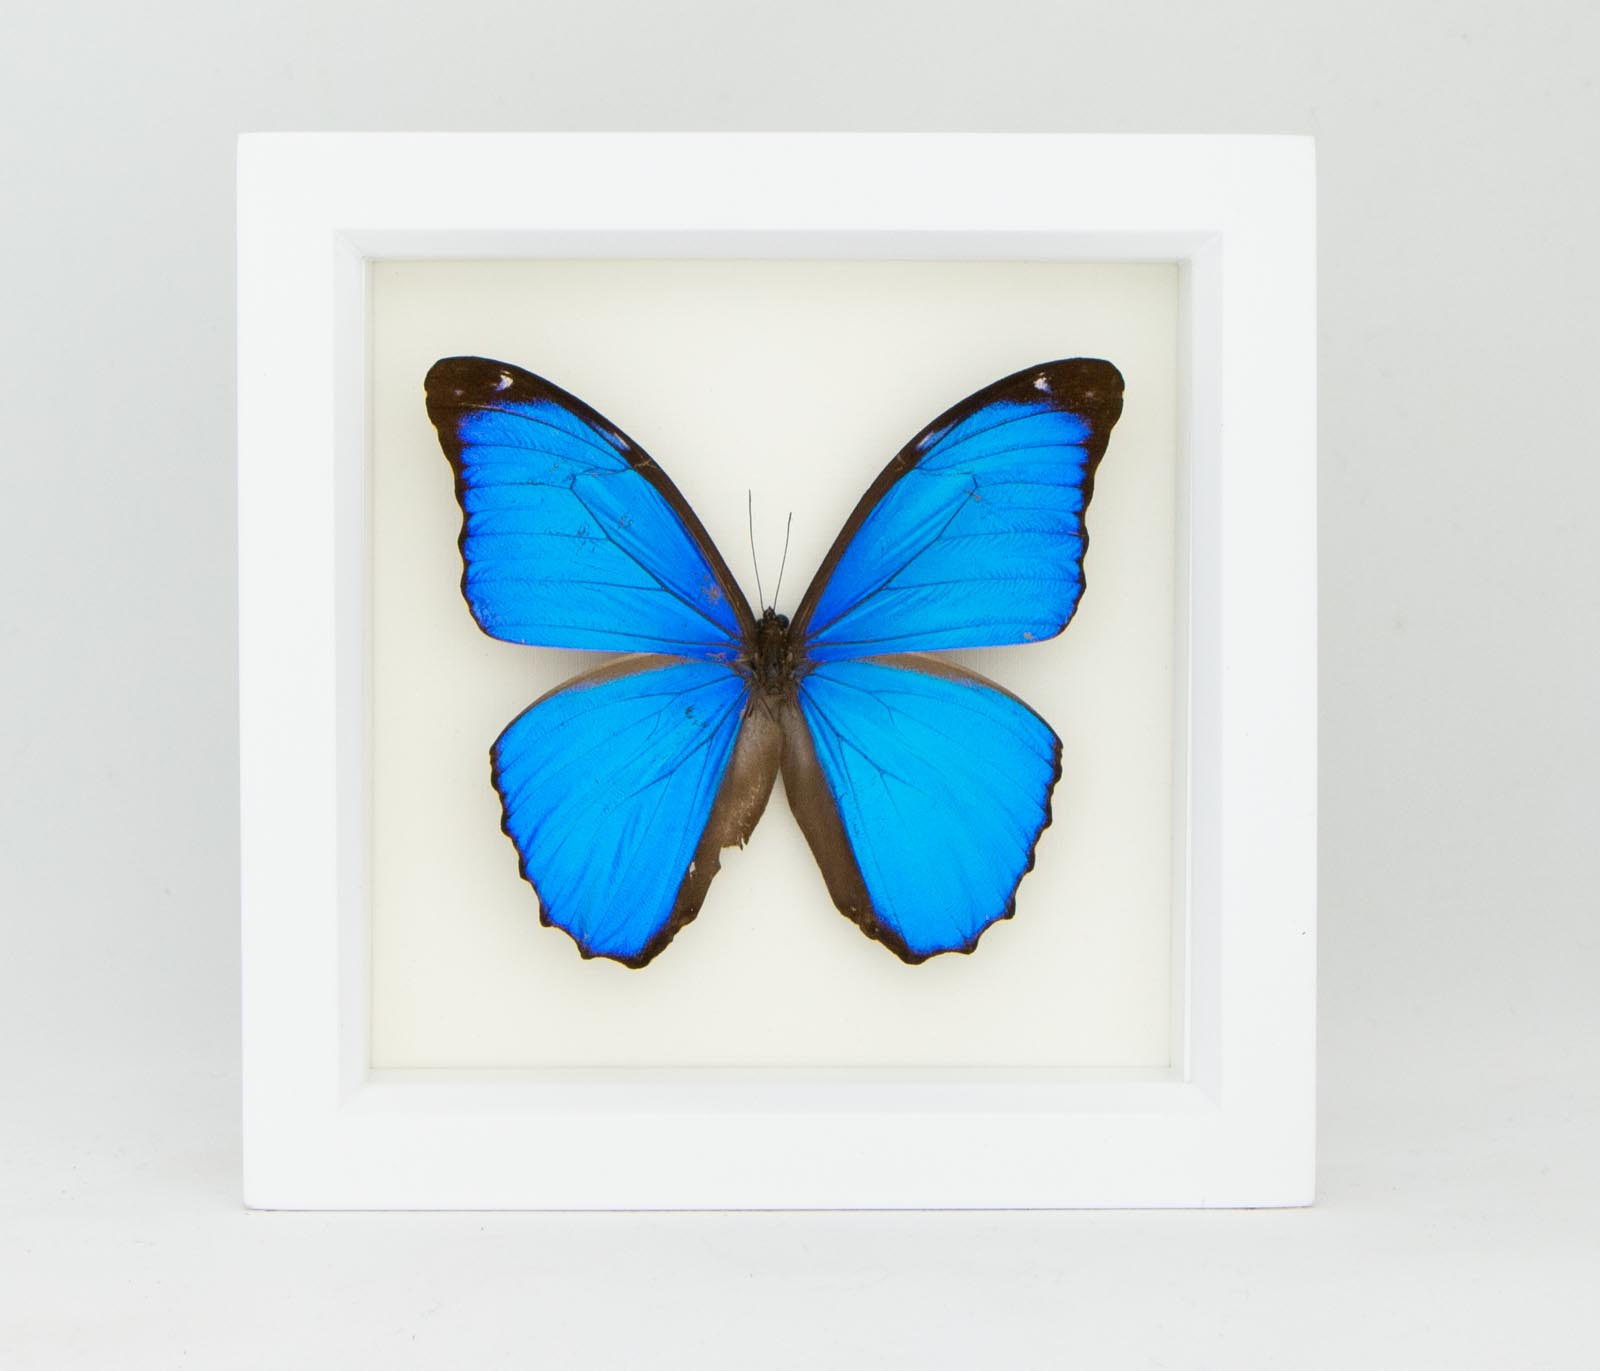 Butterfly Taxidermy Framed Butterfly Insect Taxidermy 2 Real Framed Butterfly Shadow Box- Blue Butterfly Morpho Menelaus Blue Morpho